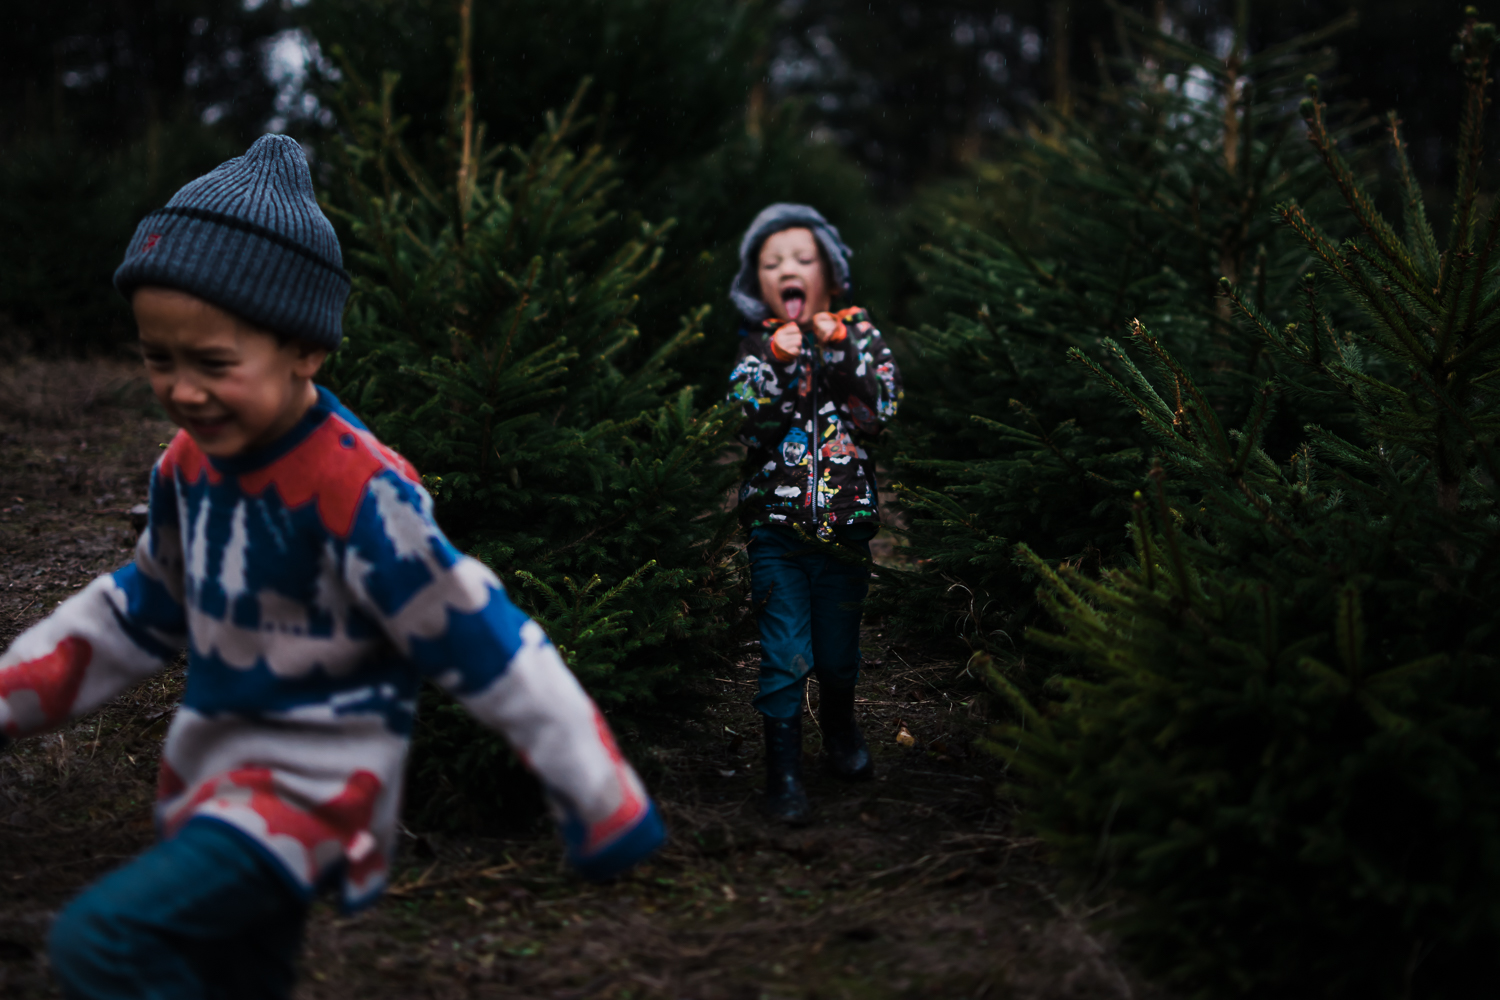 Running through the rows of Christmas trees at Bottisham tree farm - Family documentary photography by Diana Hagues